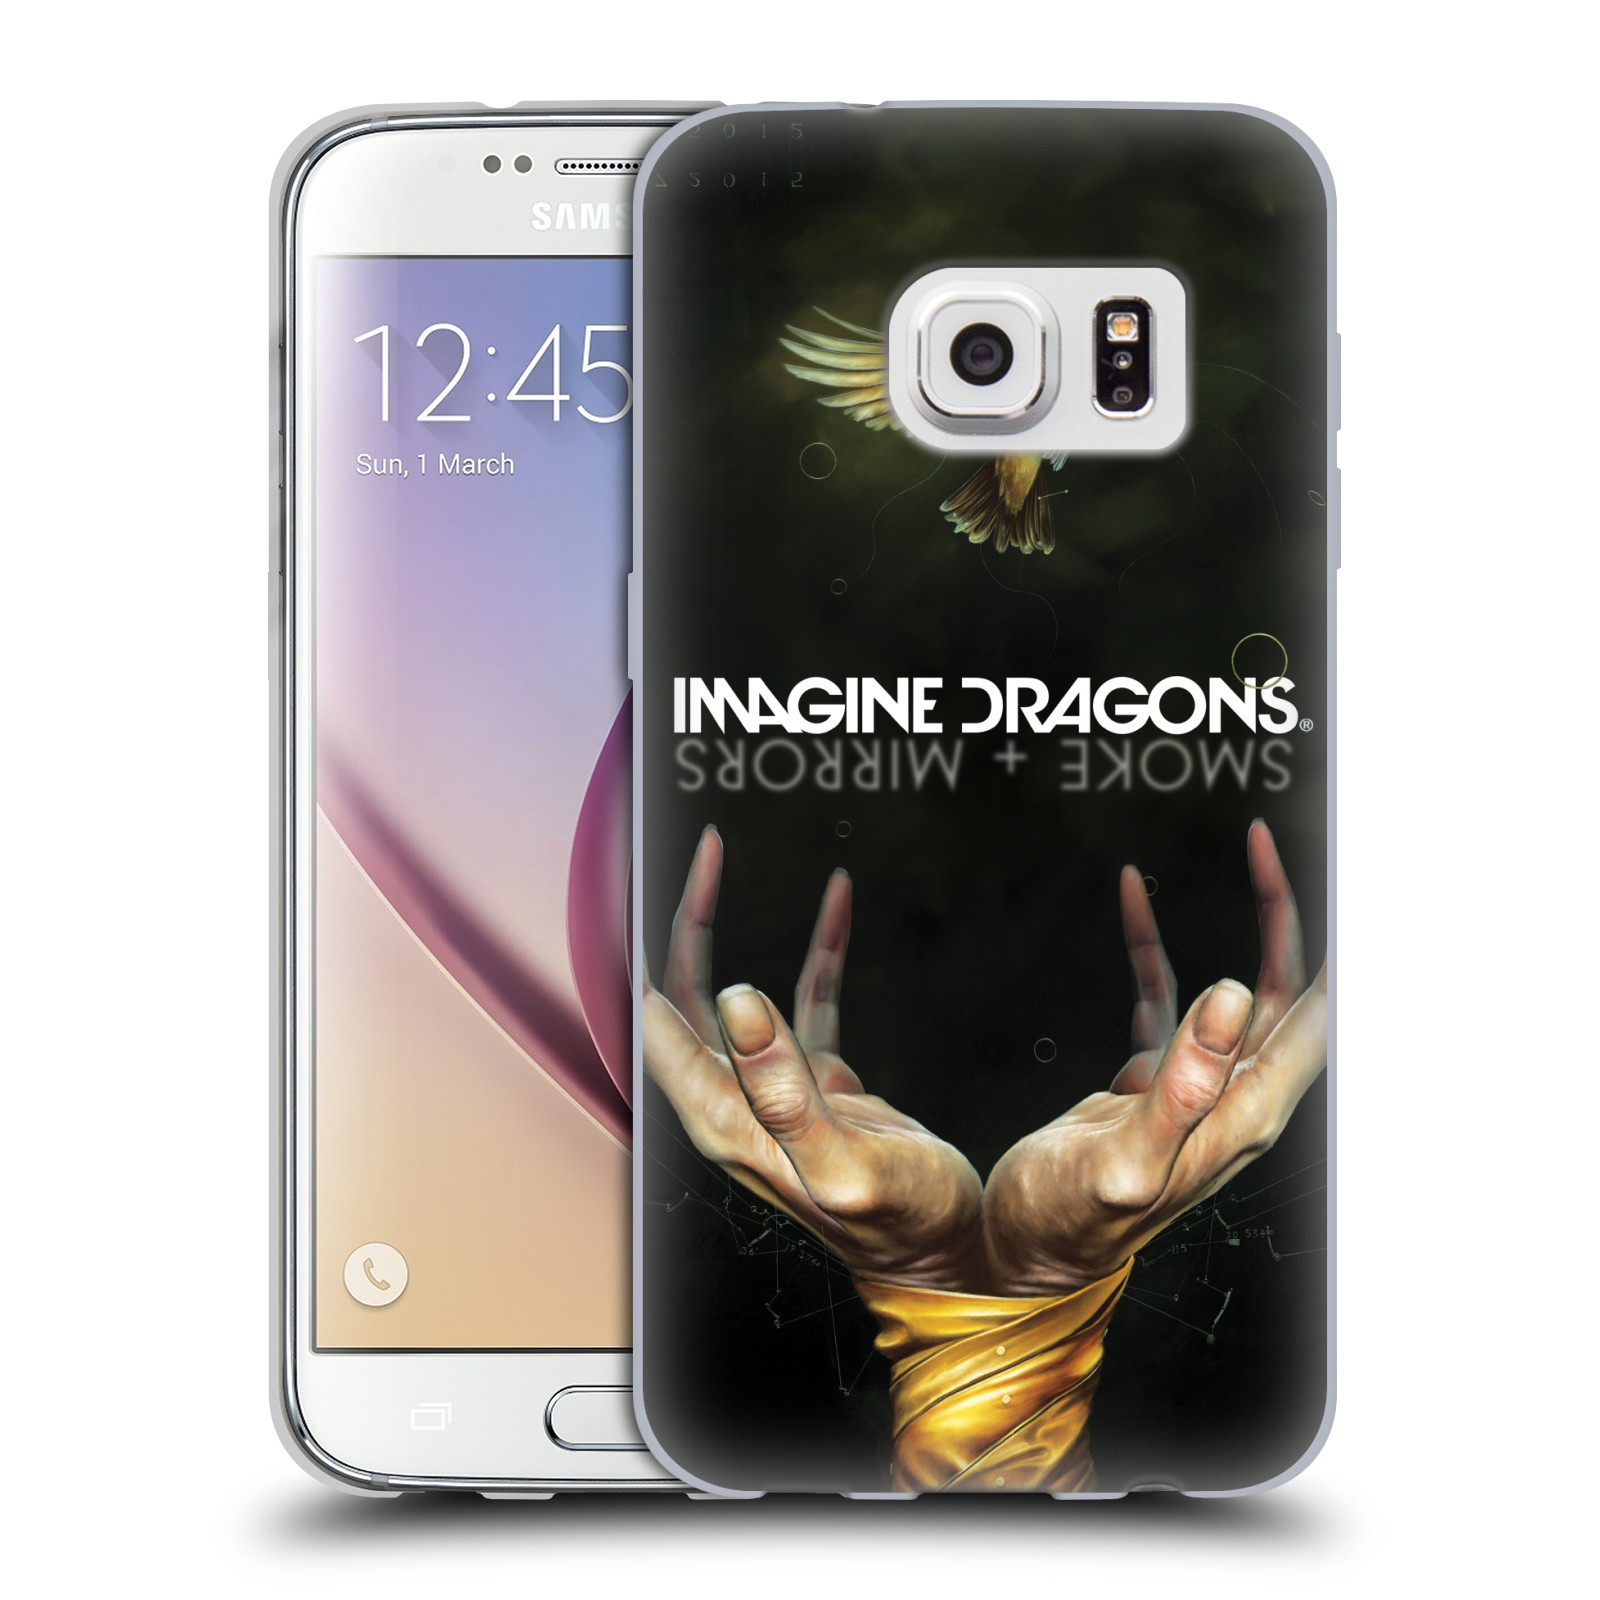 HEAD CASE silikonový obal na mobil Samsung Galaxy S7 hudební skupina Imagine Dragons SMOKE and MIRRORS